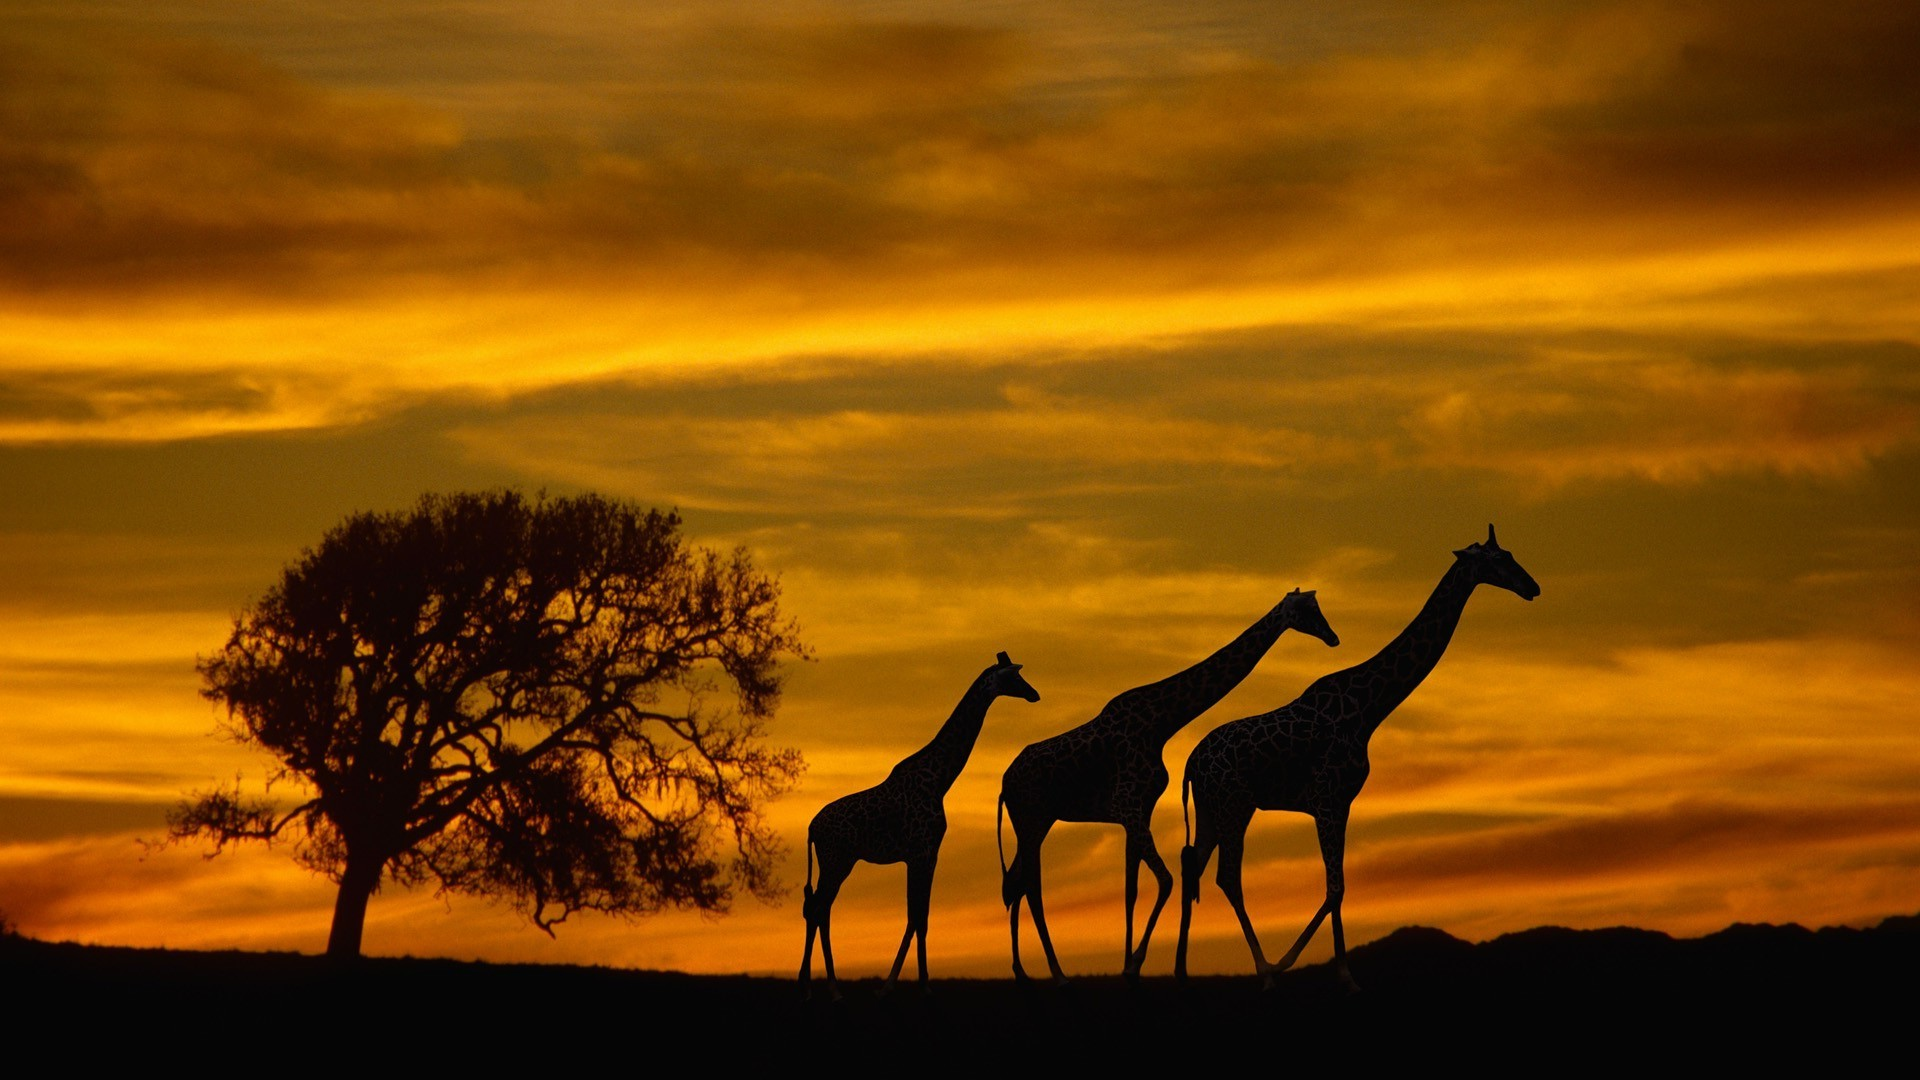 1920x1080 Africa, Giraffes, Animals, Wildlife, Sunset, Silhouette, Clouds, Sky, Trees  Wallpapers HD / Desktop and Mobile Backgrounds